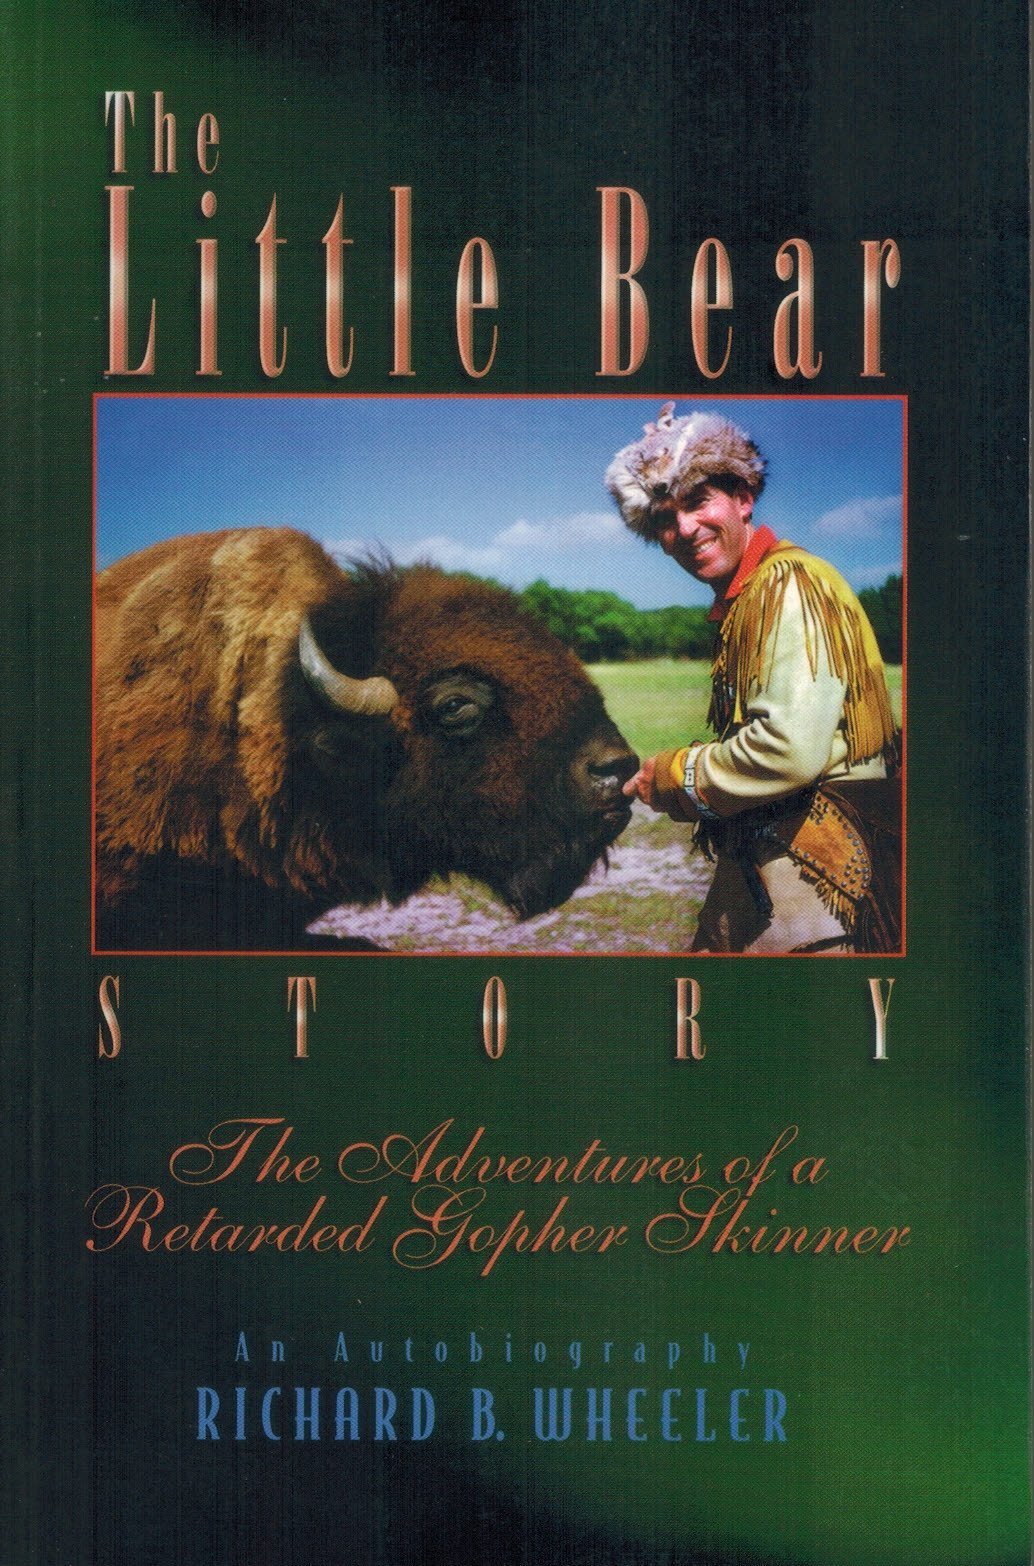 The Little Bear Story: The Adventures of a Retarded Gopher Skinner